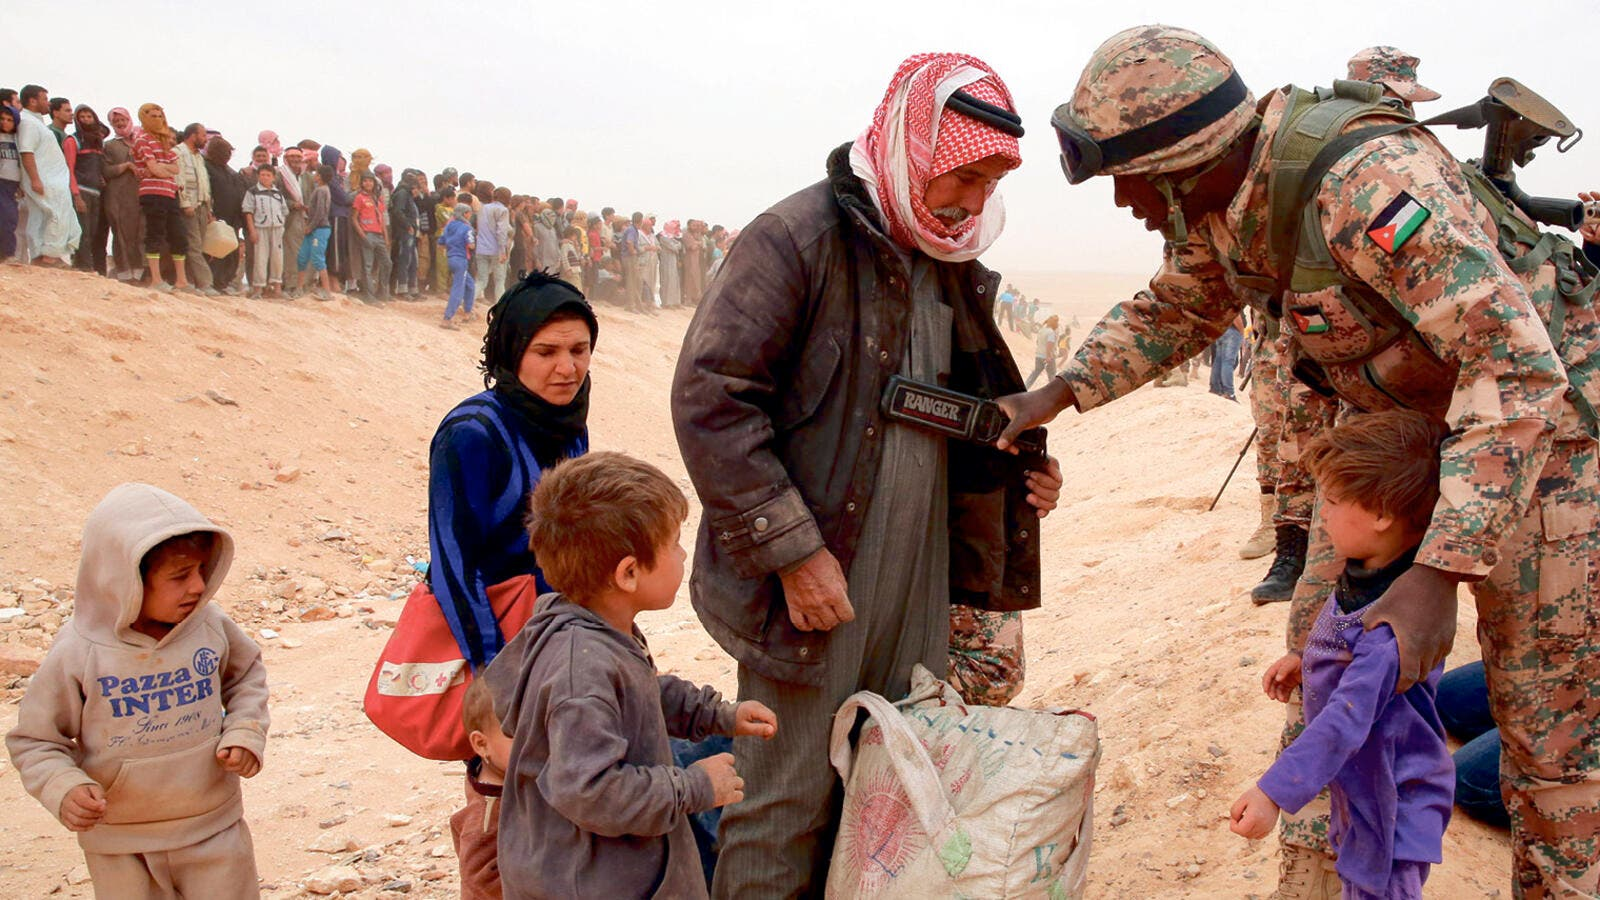 A Jordanian soldier scans newly arrived Syrian refugees as they wait to cross the border. (AFP/ File Photo)